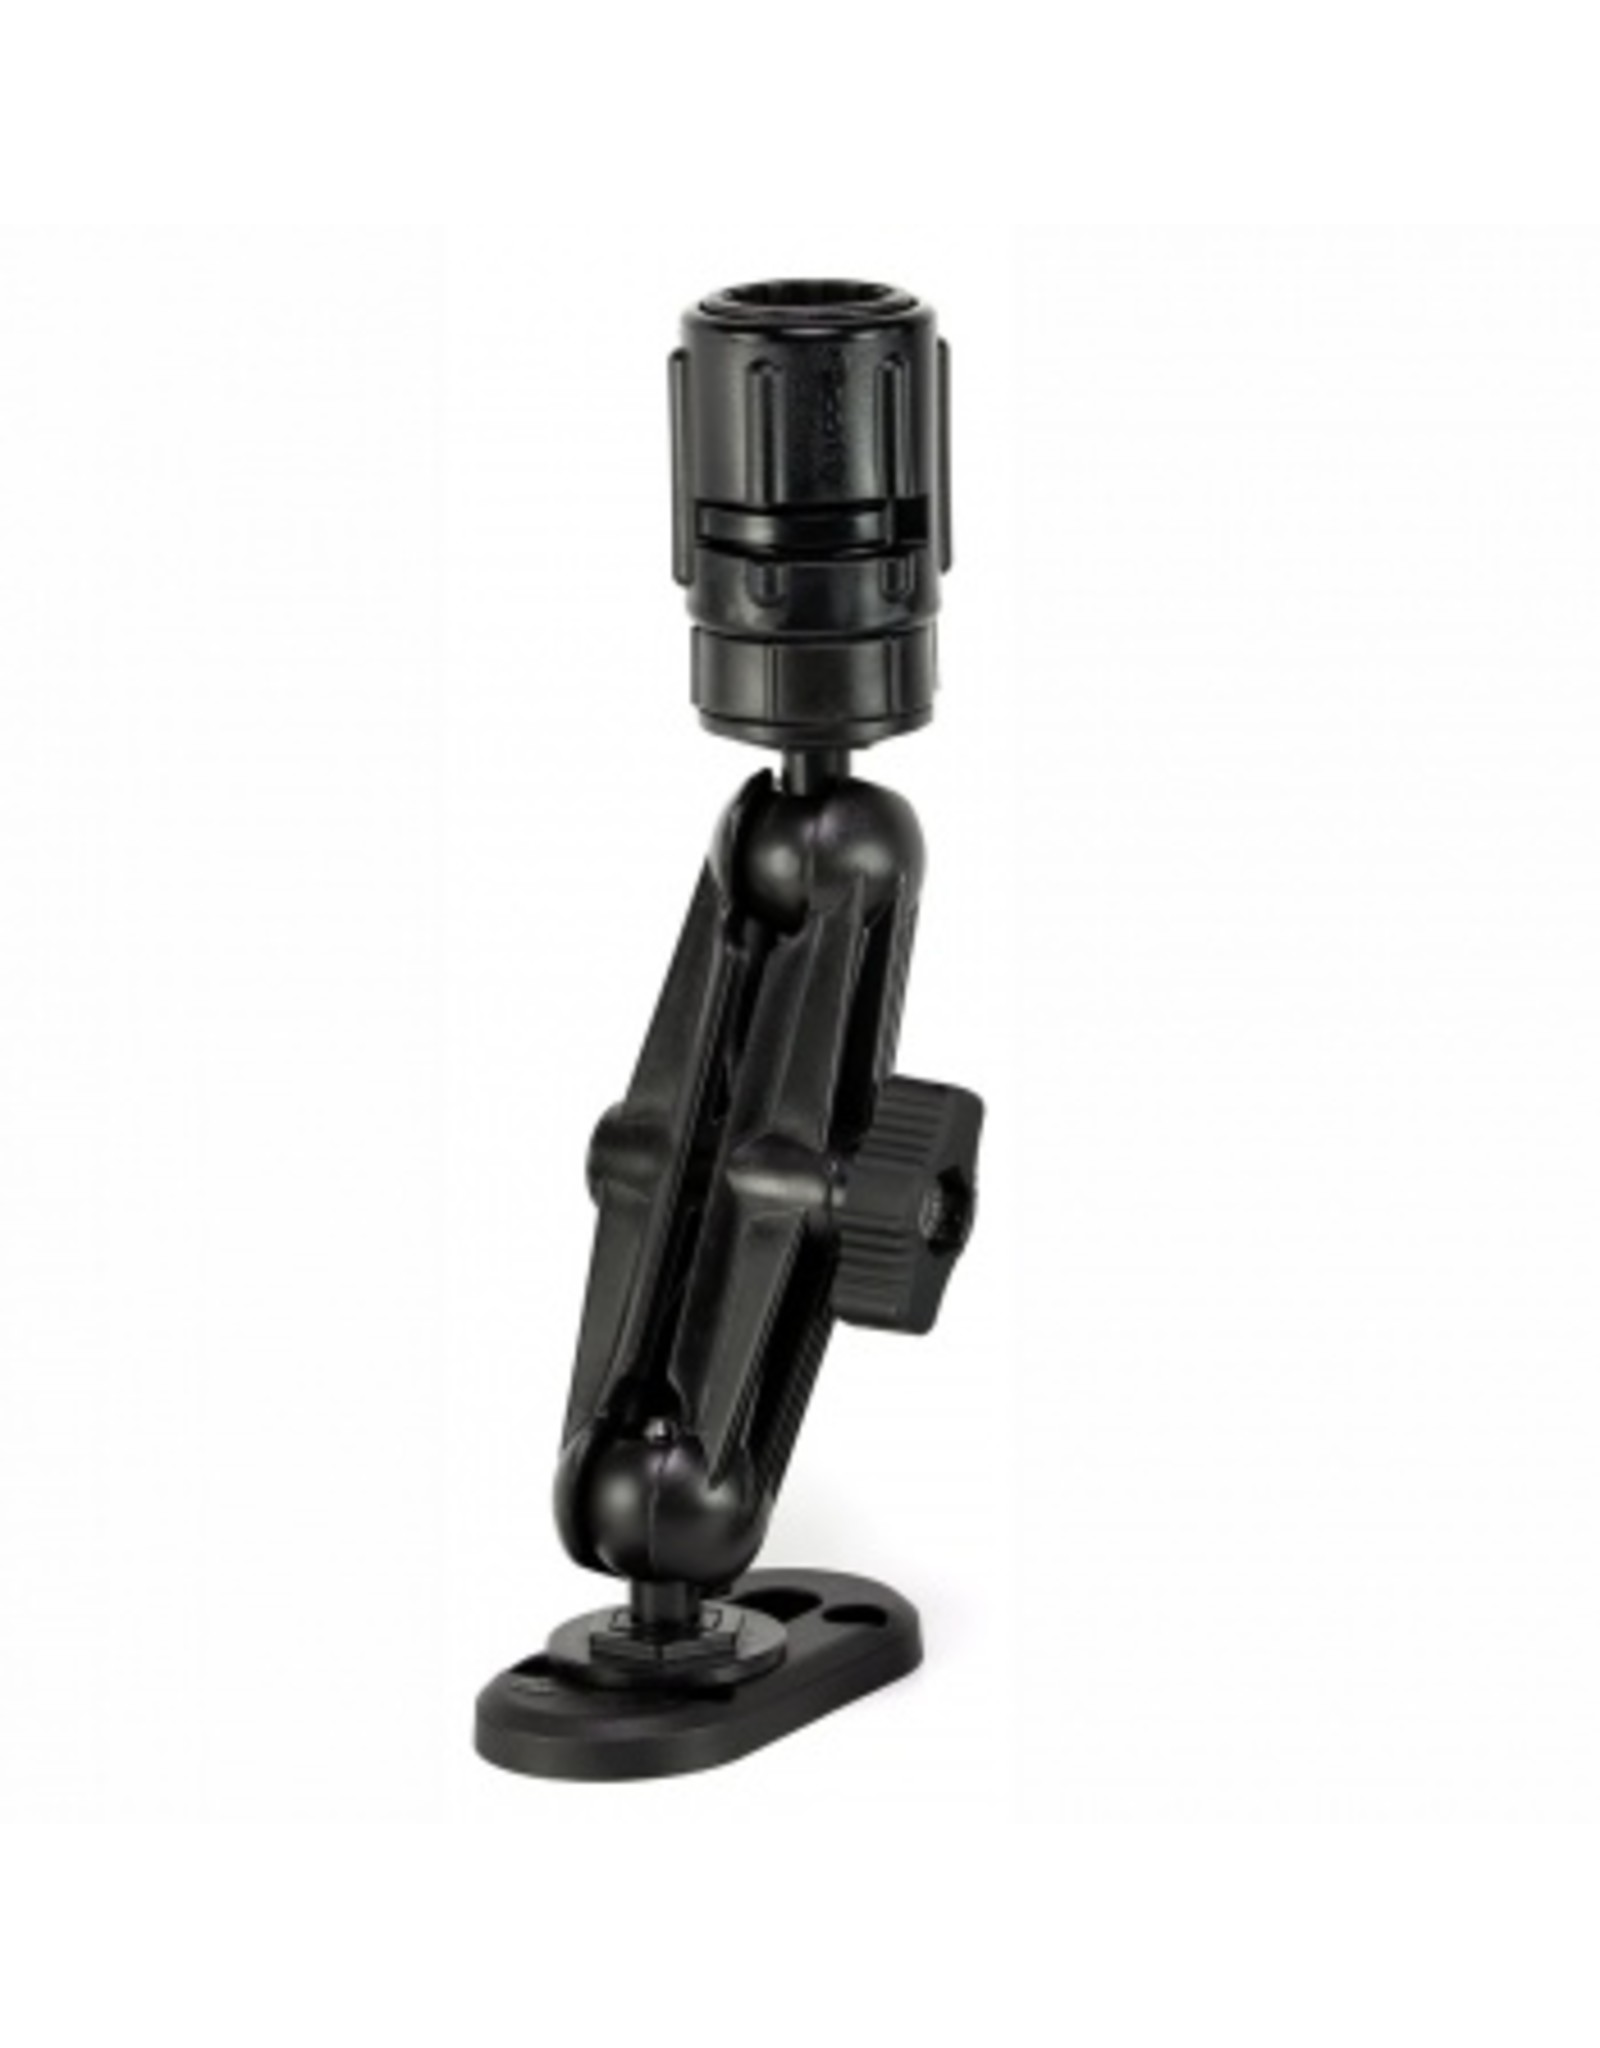 Scotty Scotty 151 Ball Mounting System w / Gearhead & Track